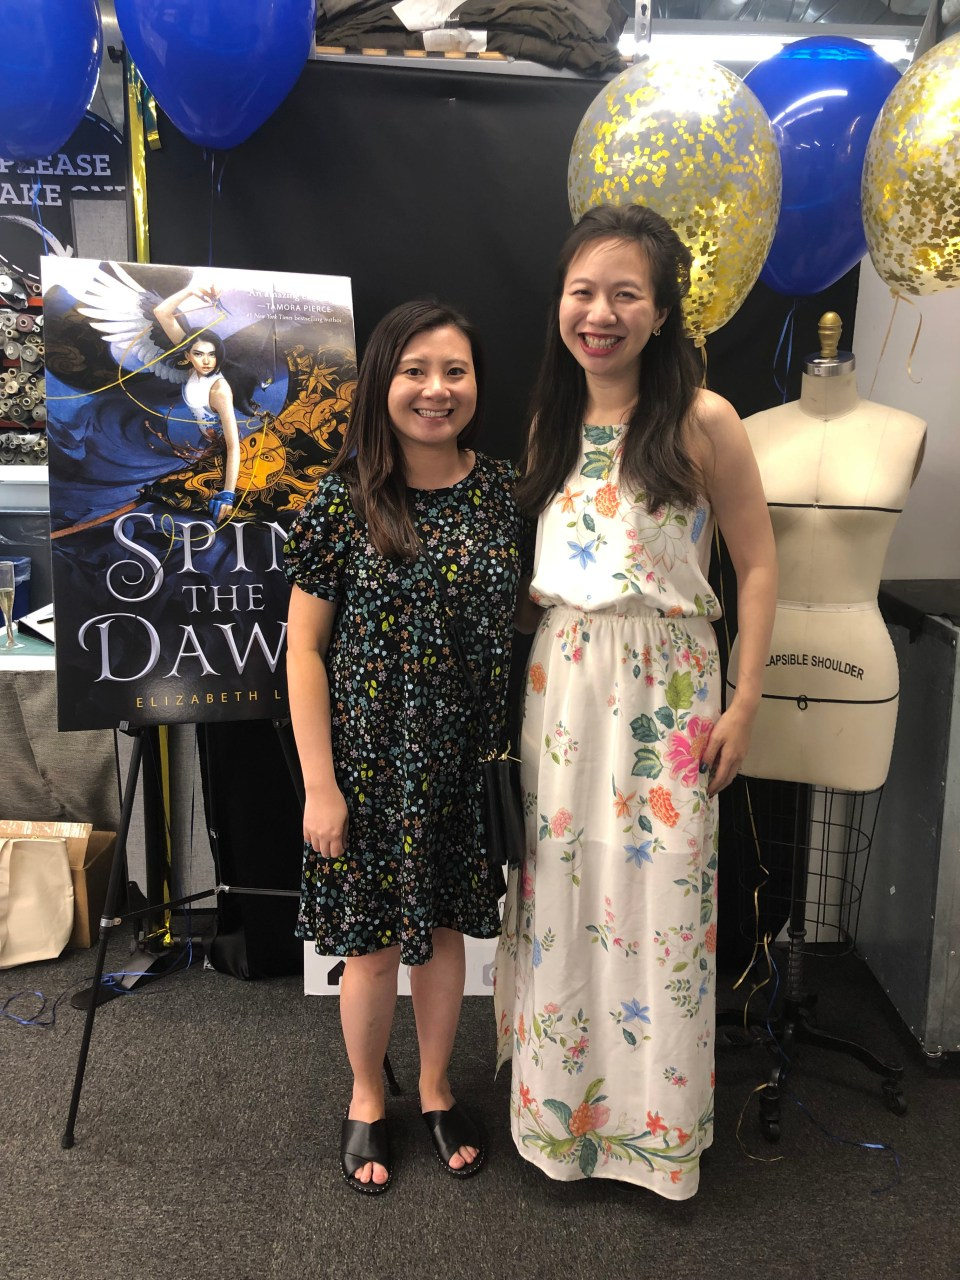 Spin the Dawn - Sip & Sew 11